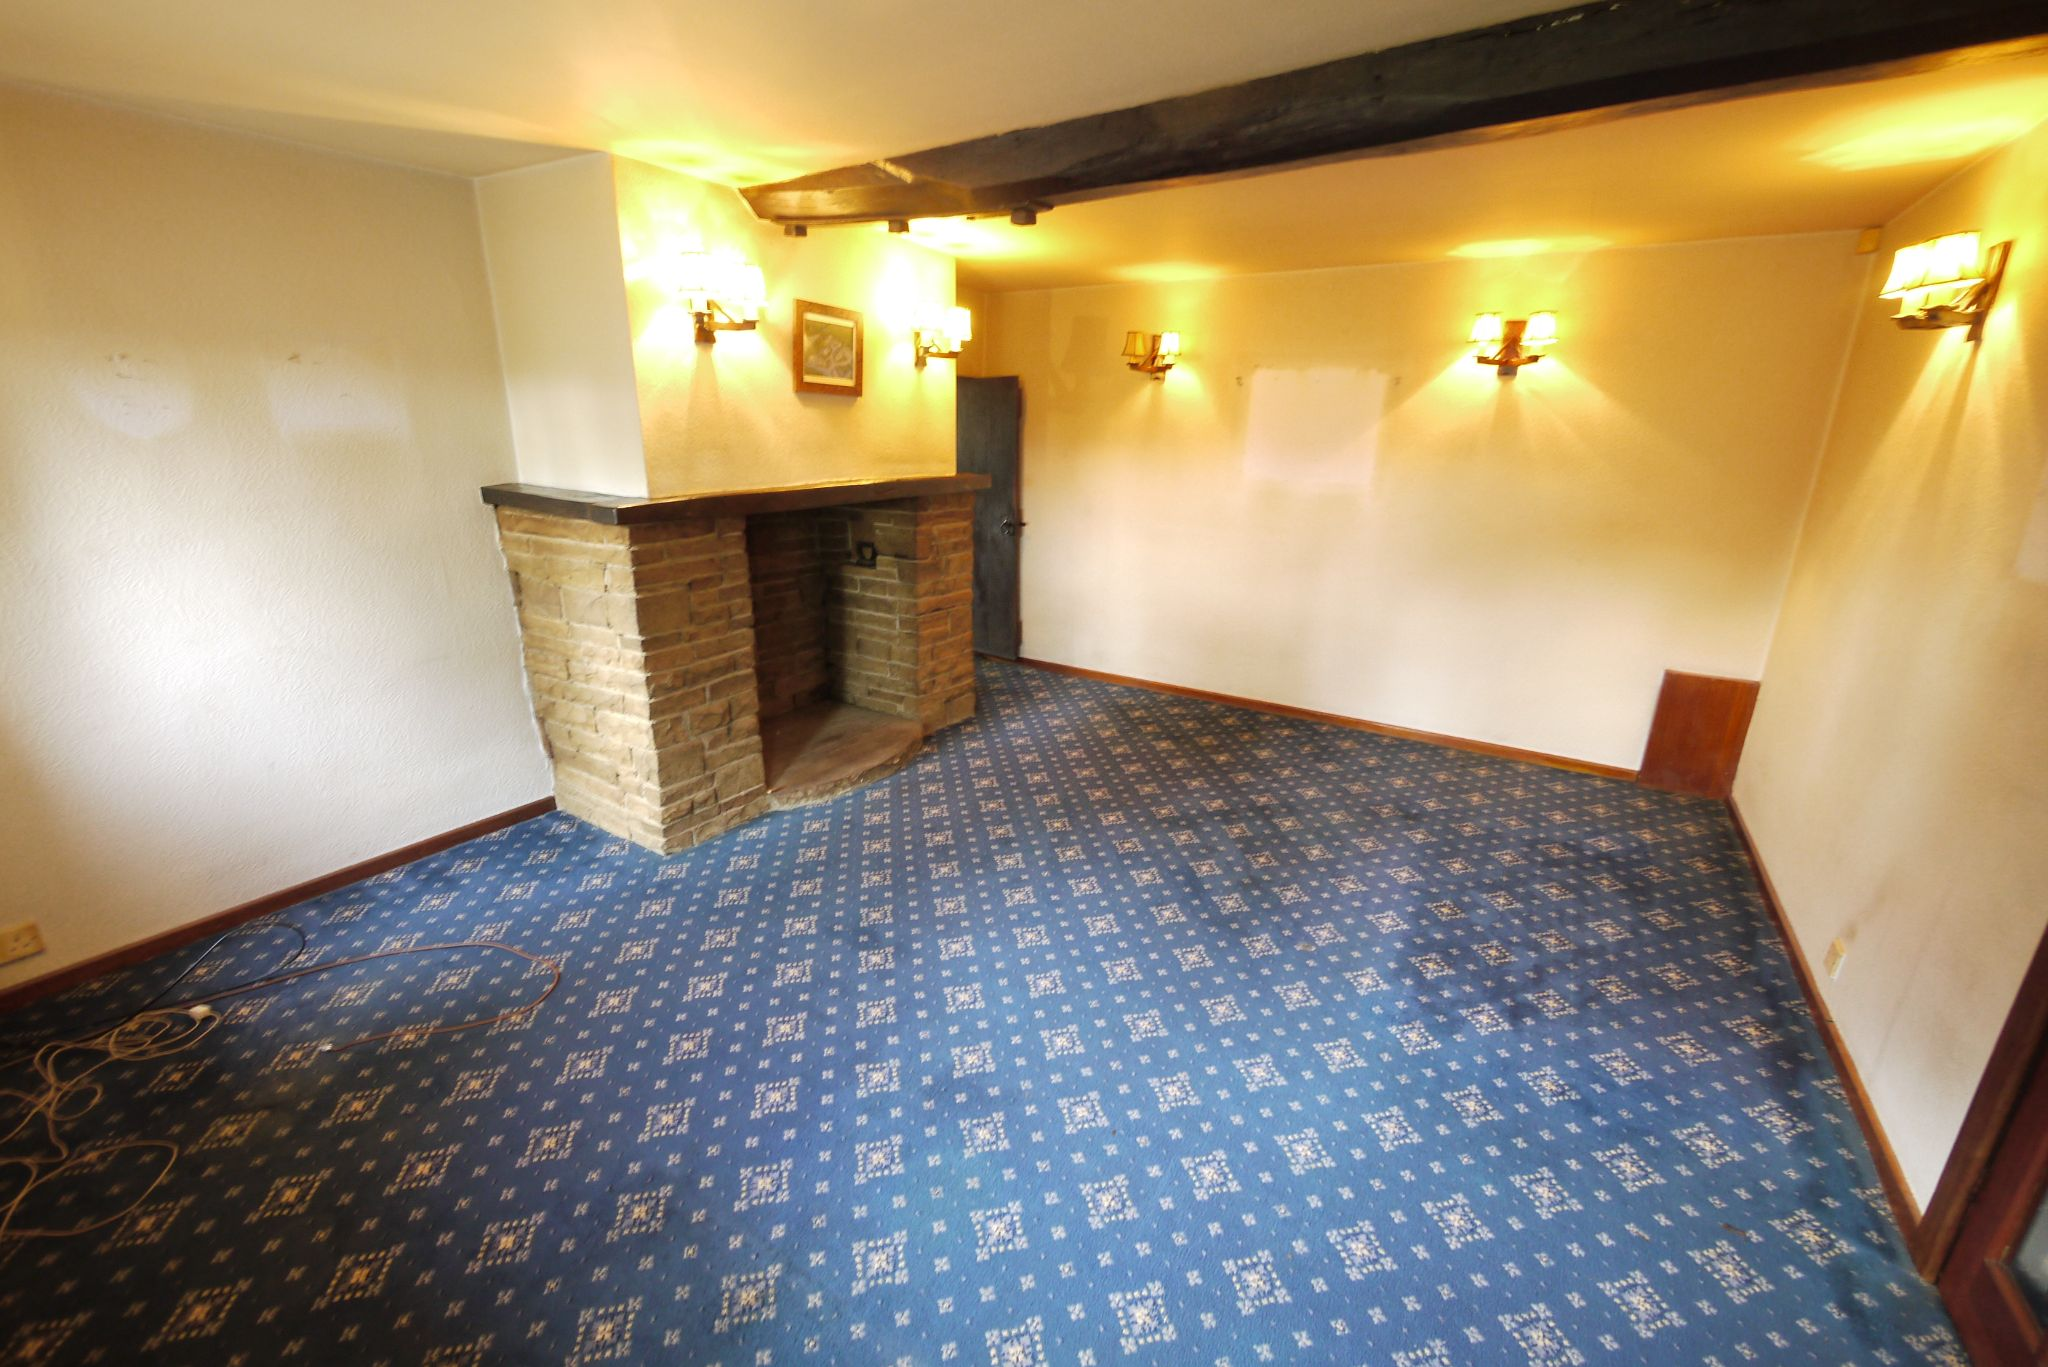 3 bedroom cottage house SSTC in Brighouse - Photograph 4.